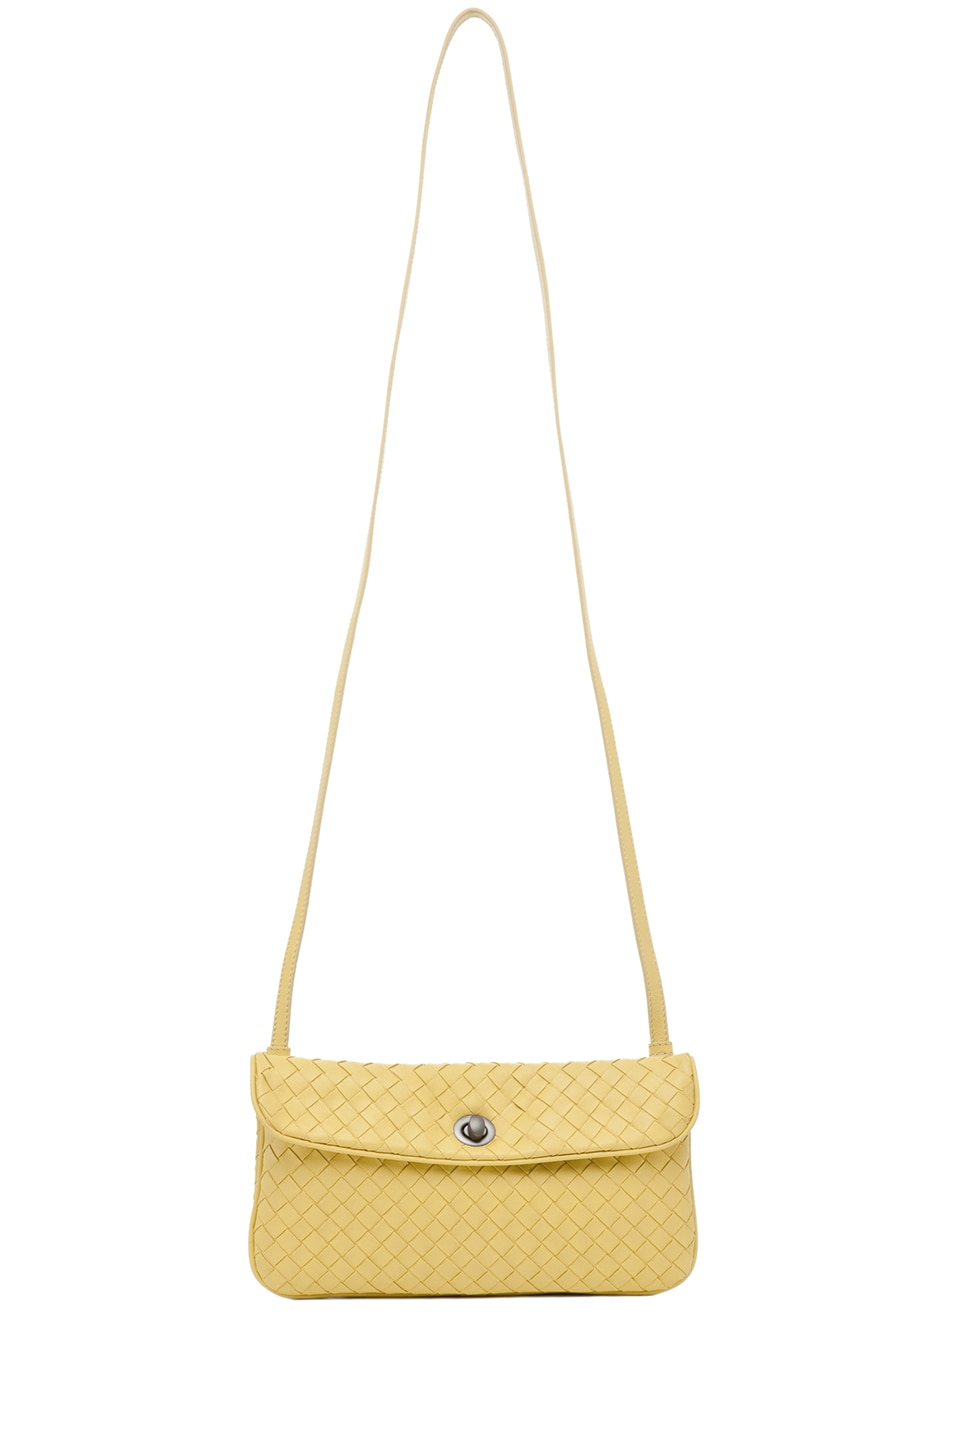 Image 5 of Bottega Veneta Crossbody Bag in Citrus Yellow